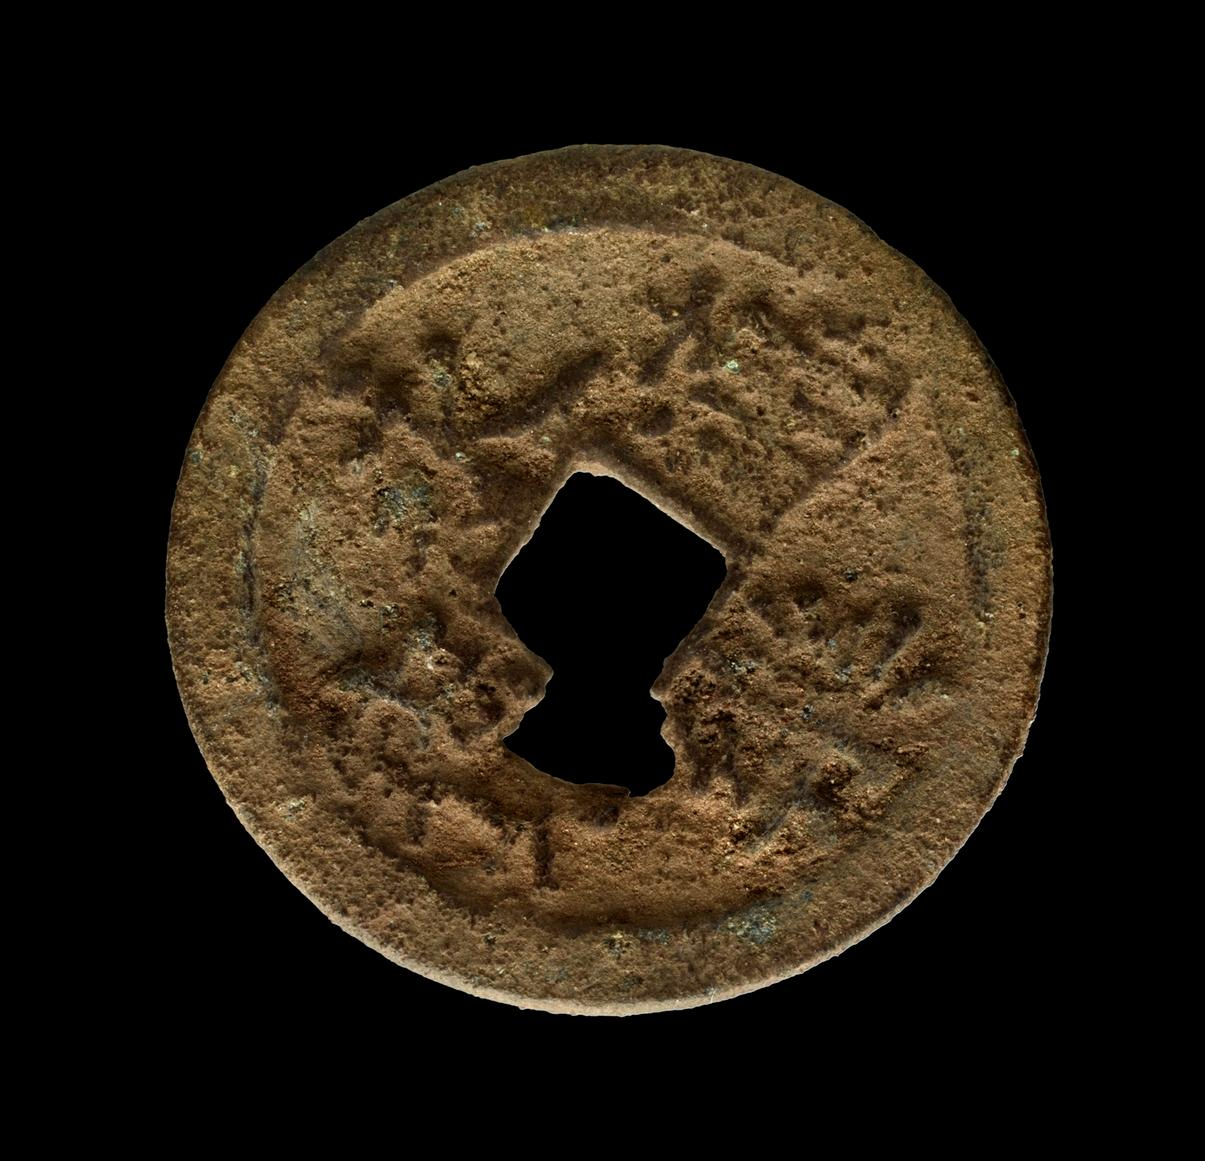 Chinese coin from early 1400s found in Kenya by the author